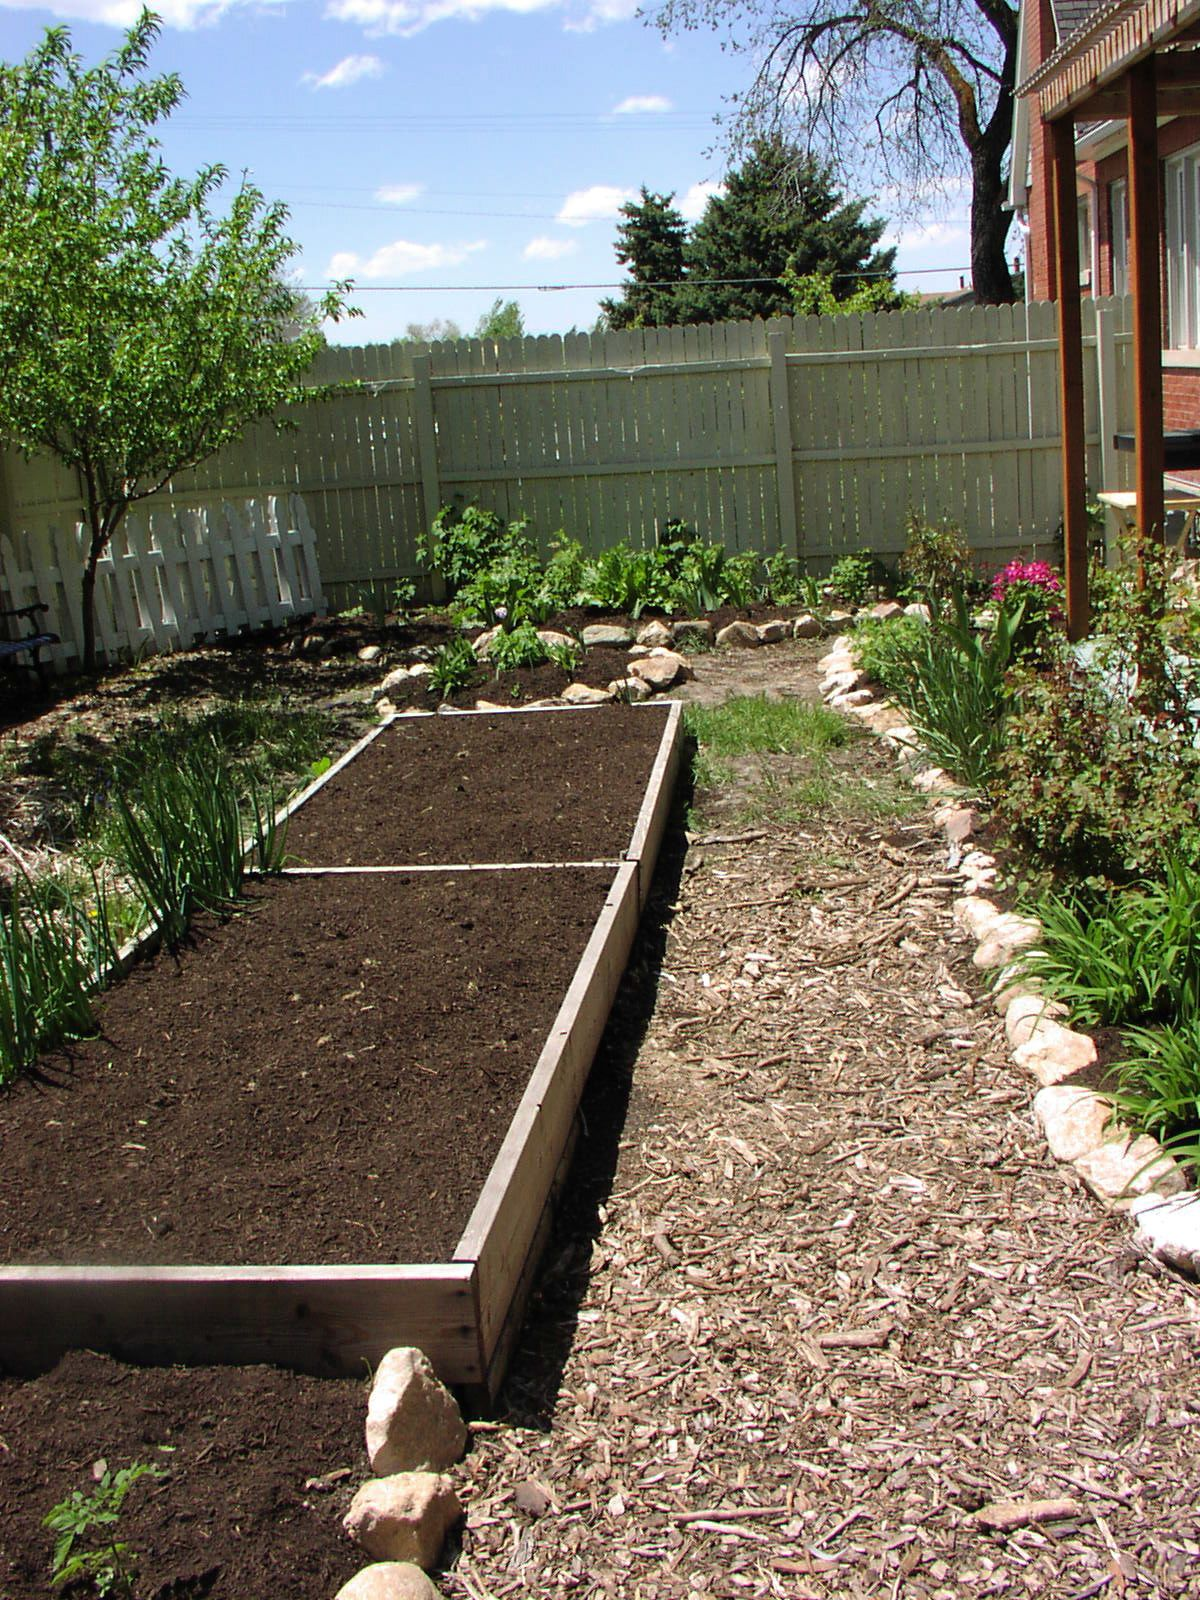 Building Your Own Raised Beds For Growing Vegetables | Garden ...